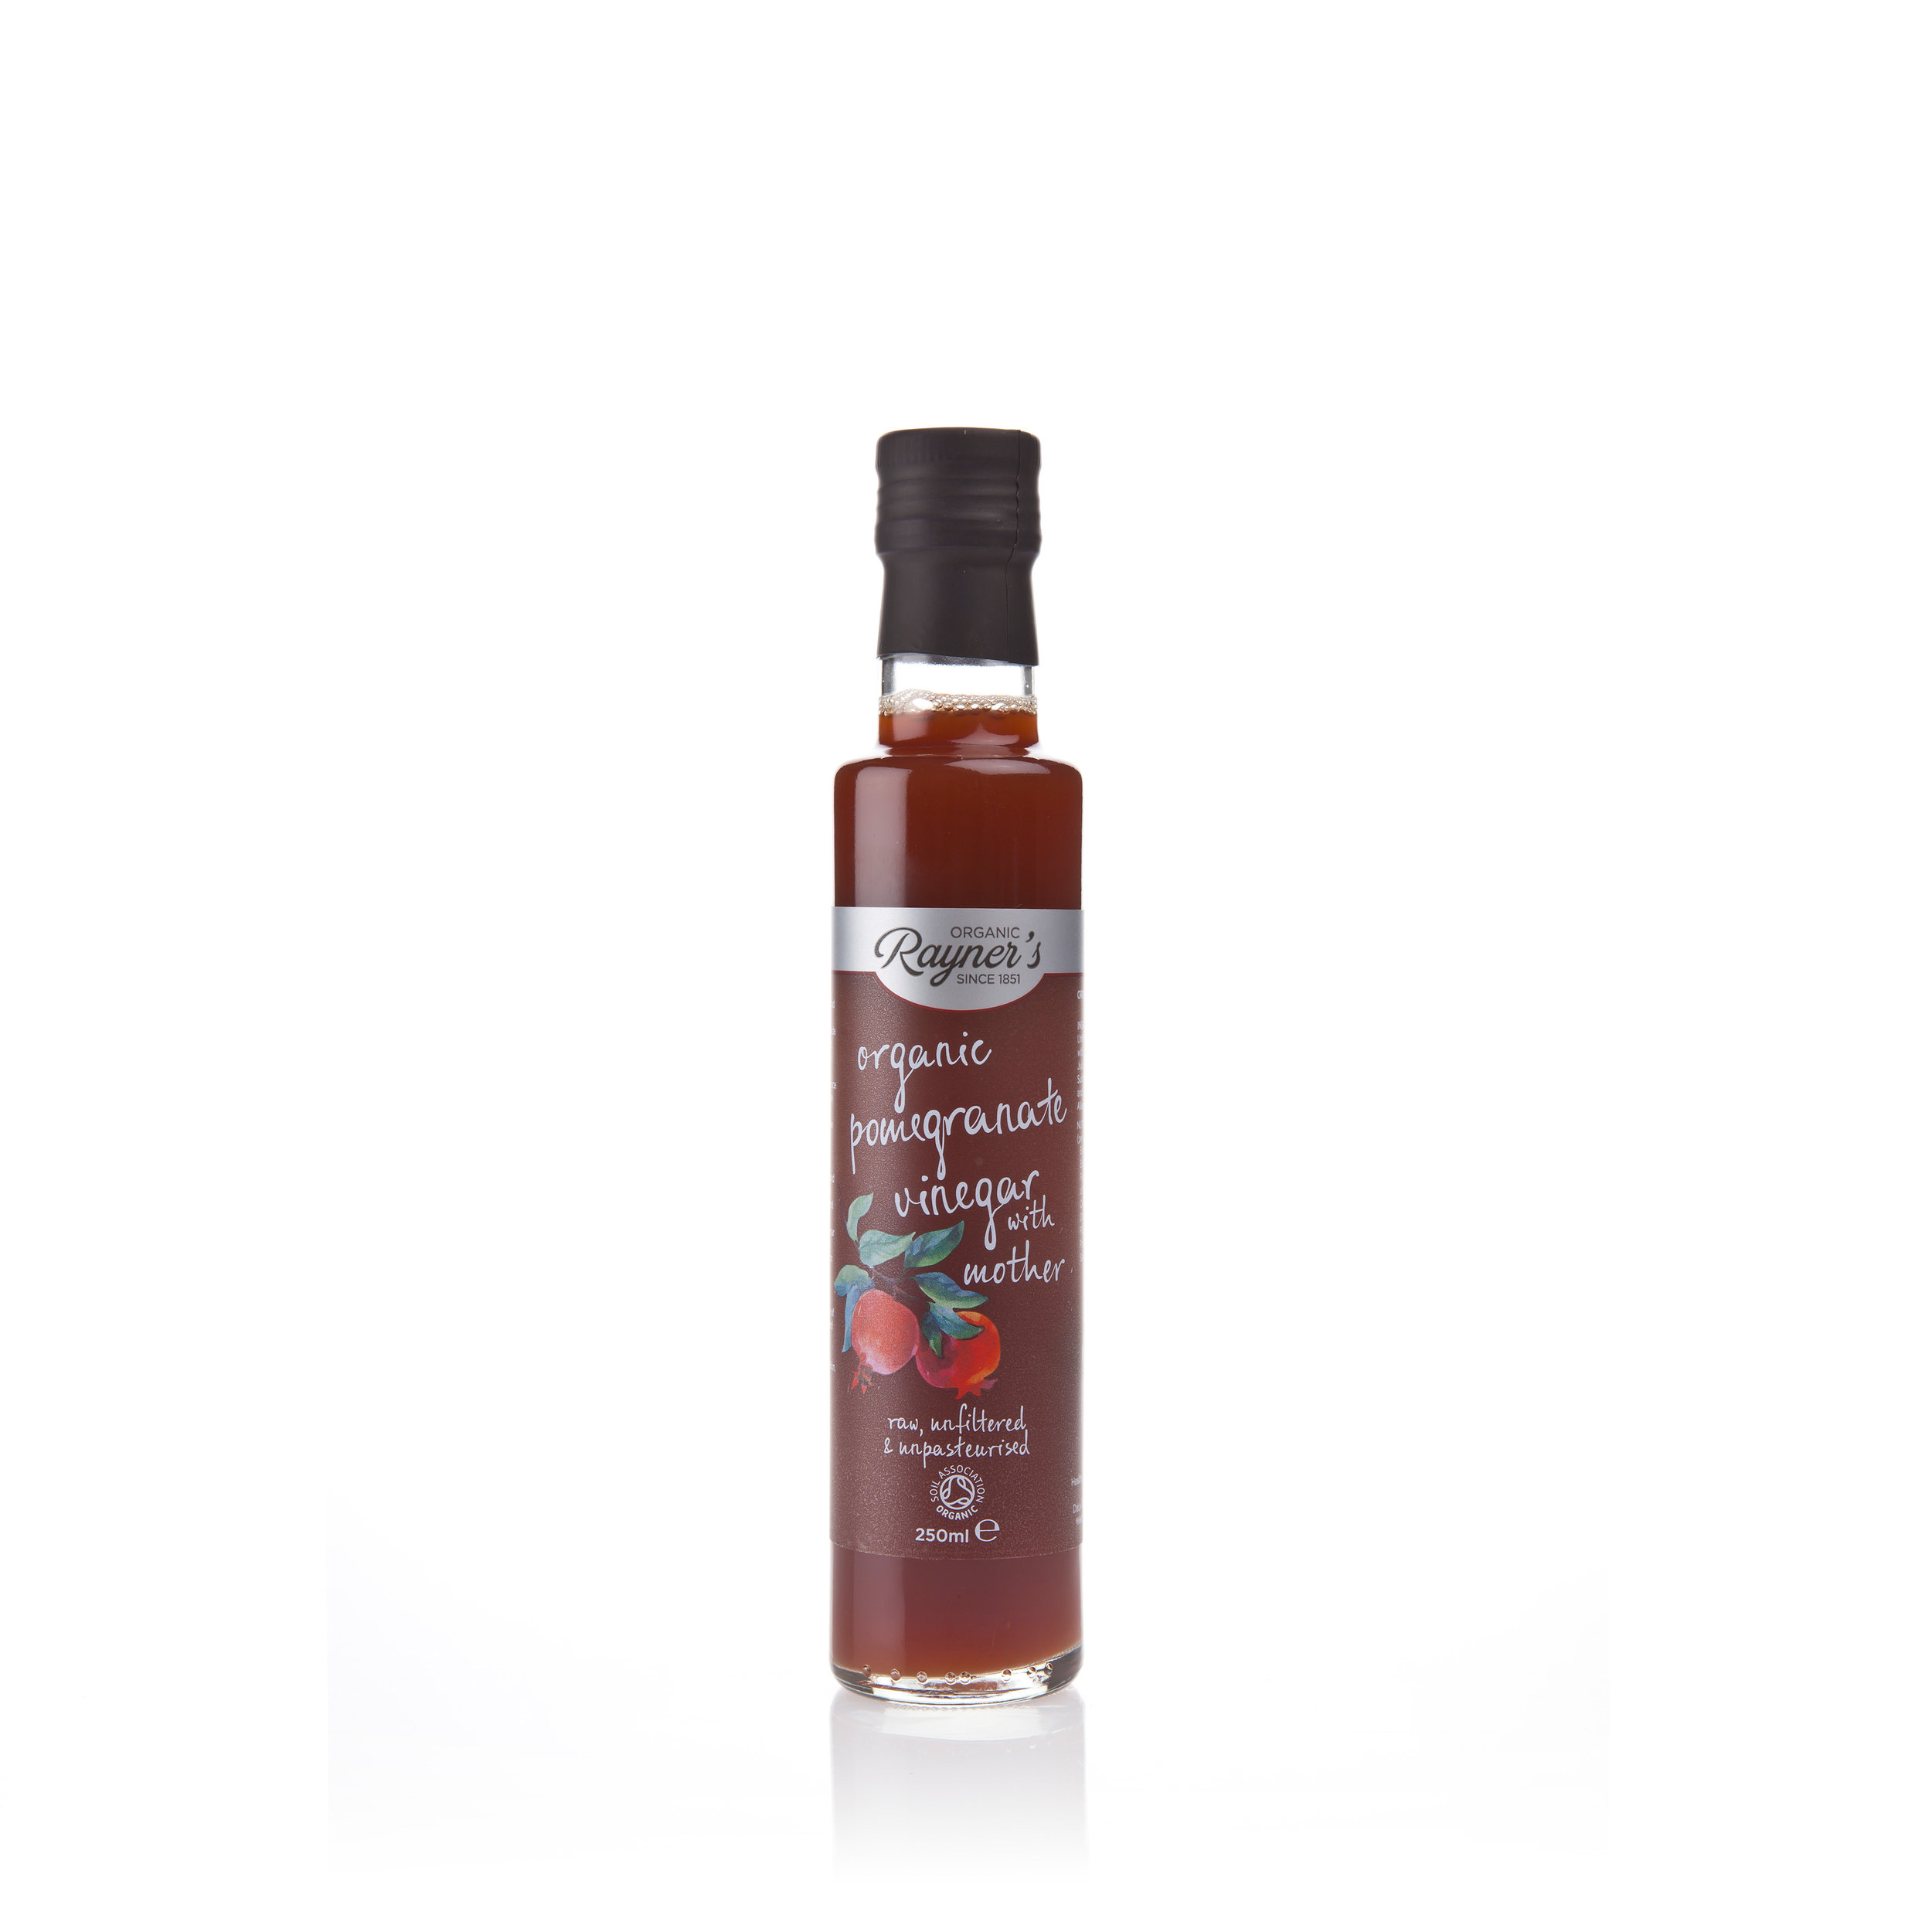 """Rayner's Organic Pomegranate Vinegar with Mother  - Rayner's Organic Pomegranate Vinegar is raw, unfiltered, unpasteurised and contains """"The Mother"""". Give it a shake to unlock the live bacteria and natural enzymes. Rich in antioxidants, it includes a dash of organic pomegranate juice to enhance that delicious pomegranate flavour. With its delicate aroma and distinctive taste, Rayner's Organic Pomegranate Vinegar works perfectly as a salad dressing, along with marinades and sauces. To make a refreshing tonic add a tablespoon to a glass of water with honey and enjoy.250ml"""